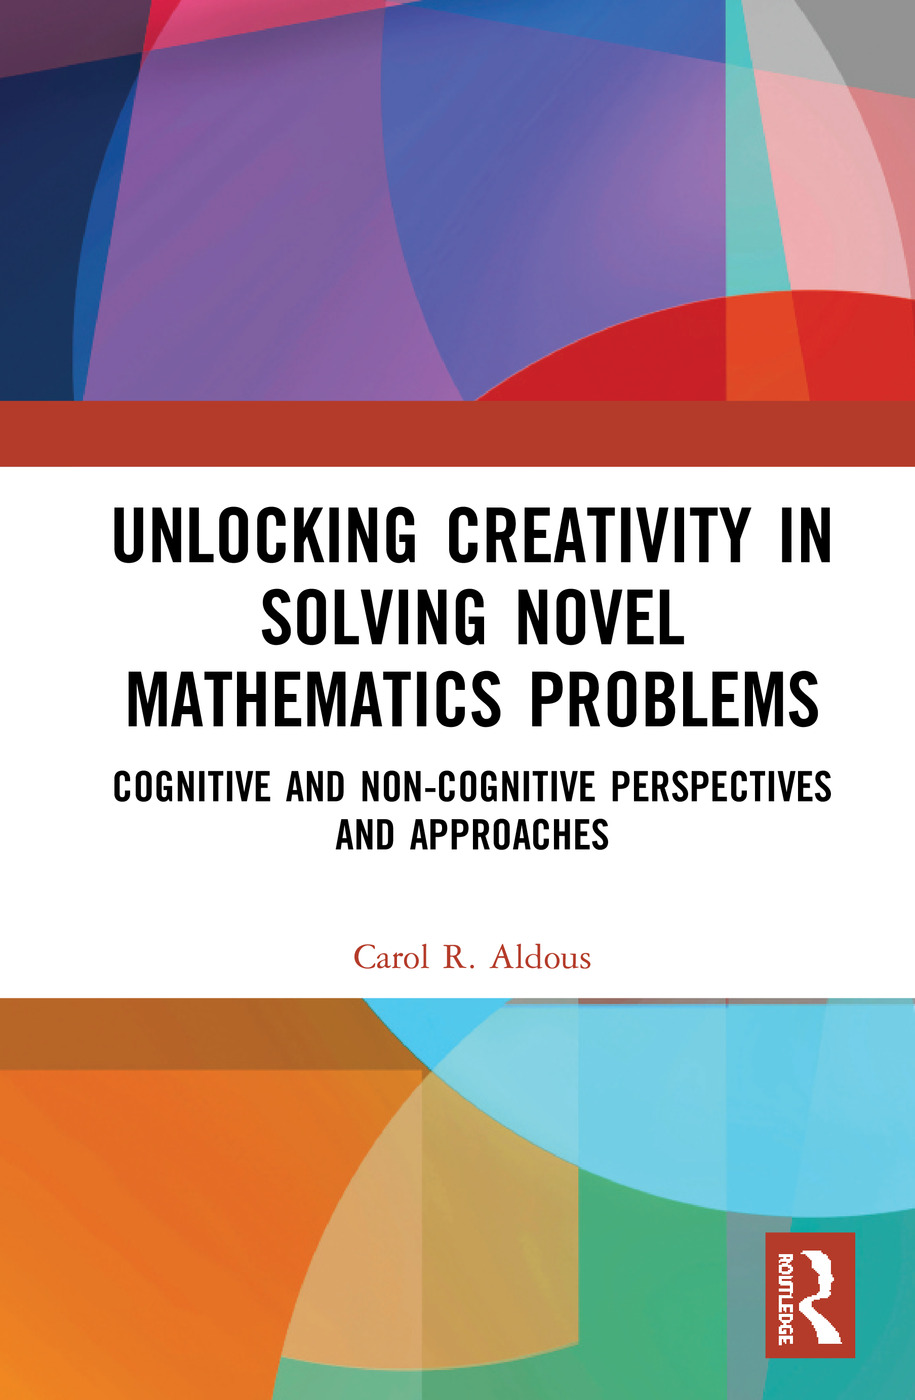 Unlocking Creativity in Solving Novel Mathematics Problems: Cognitive and Non-Cognitive Perspectives and Approaches book cover